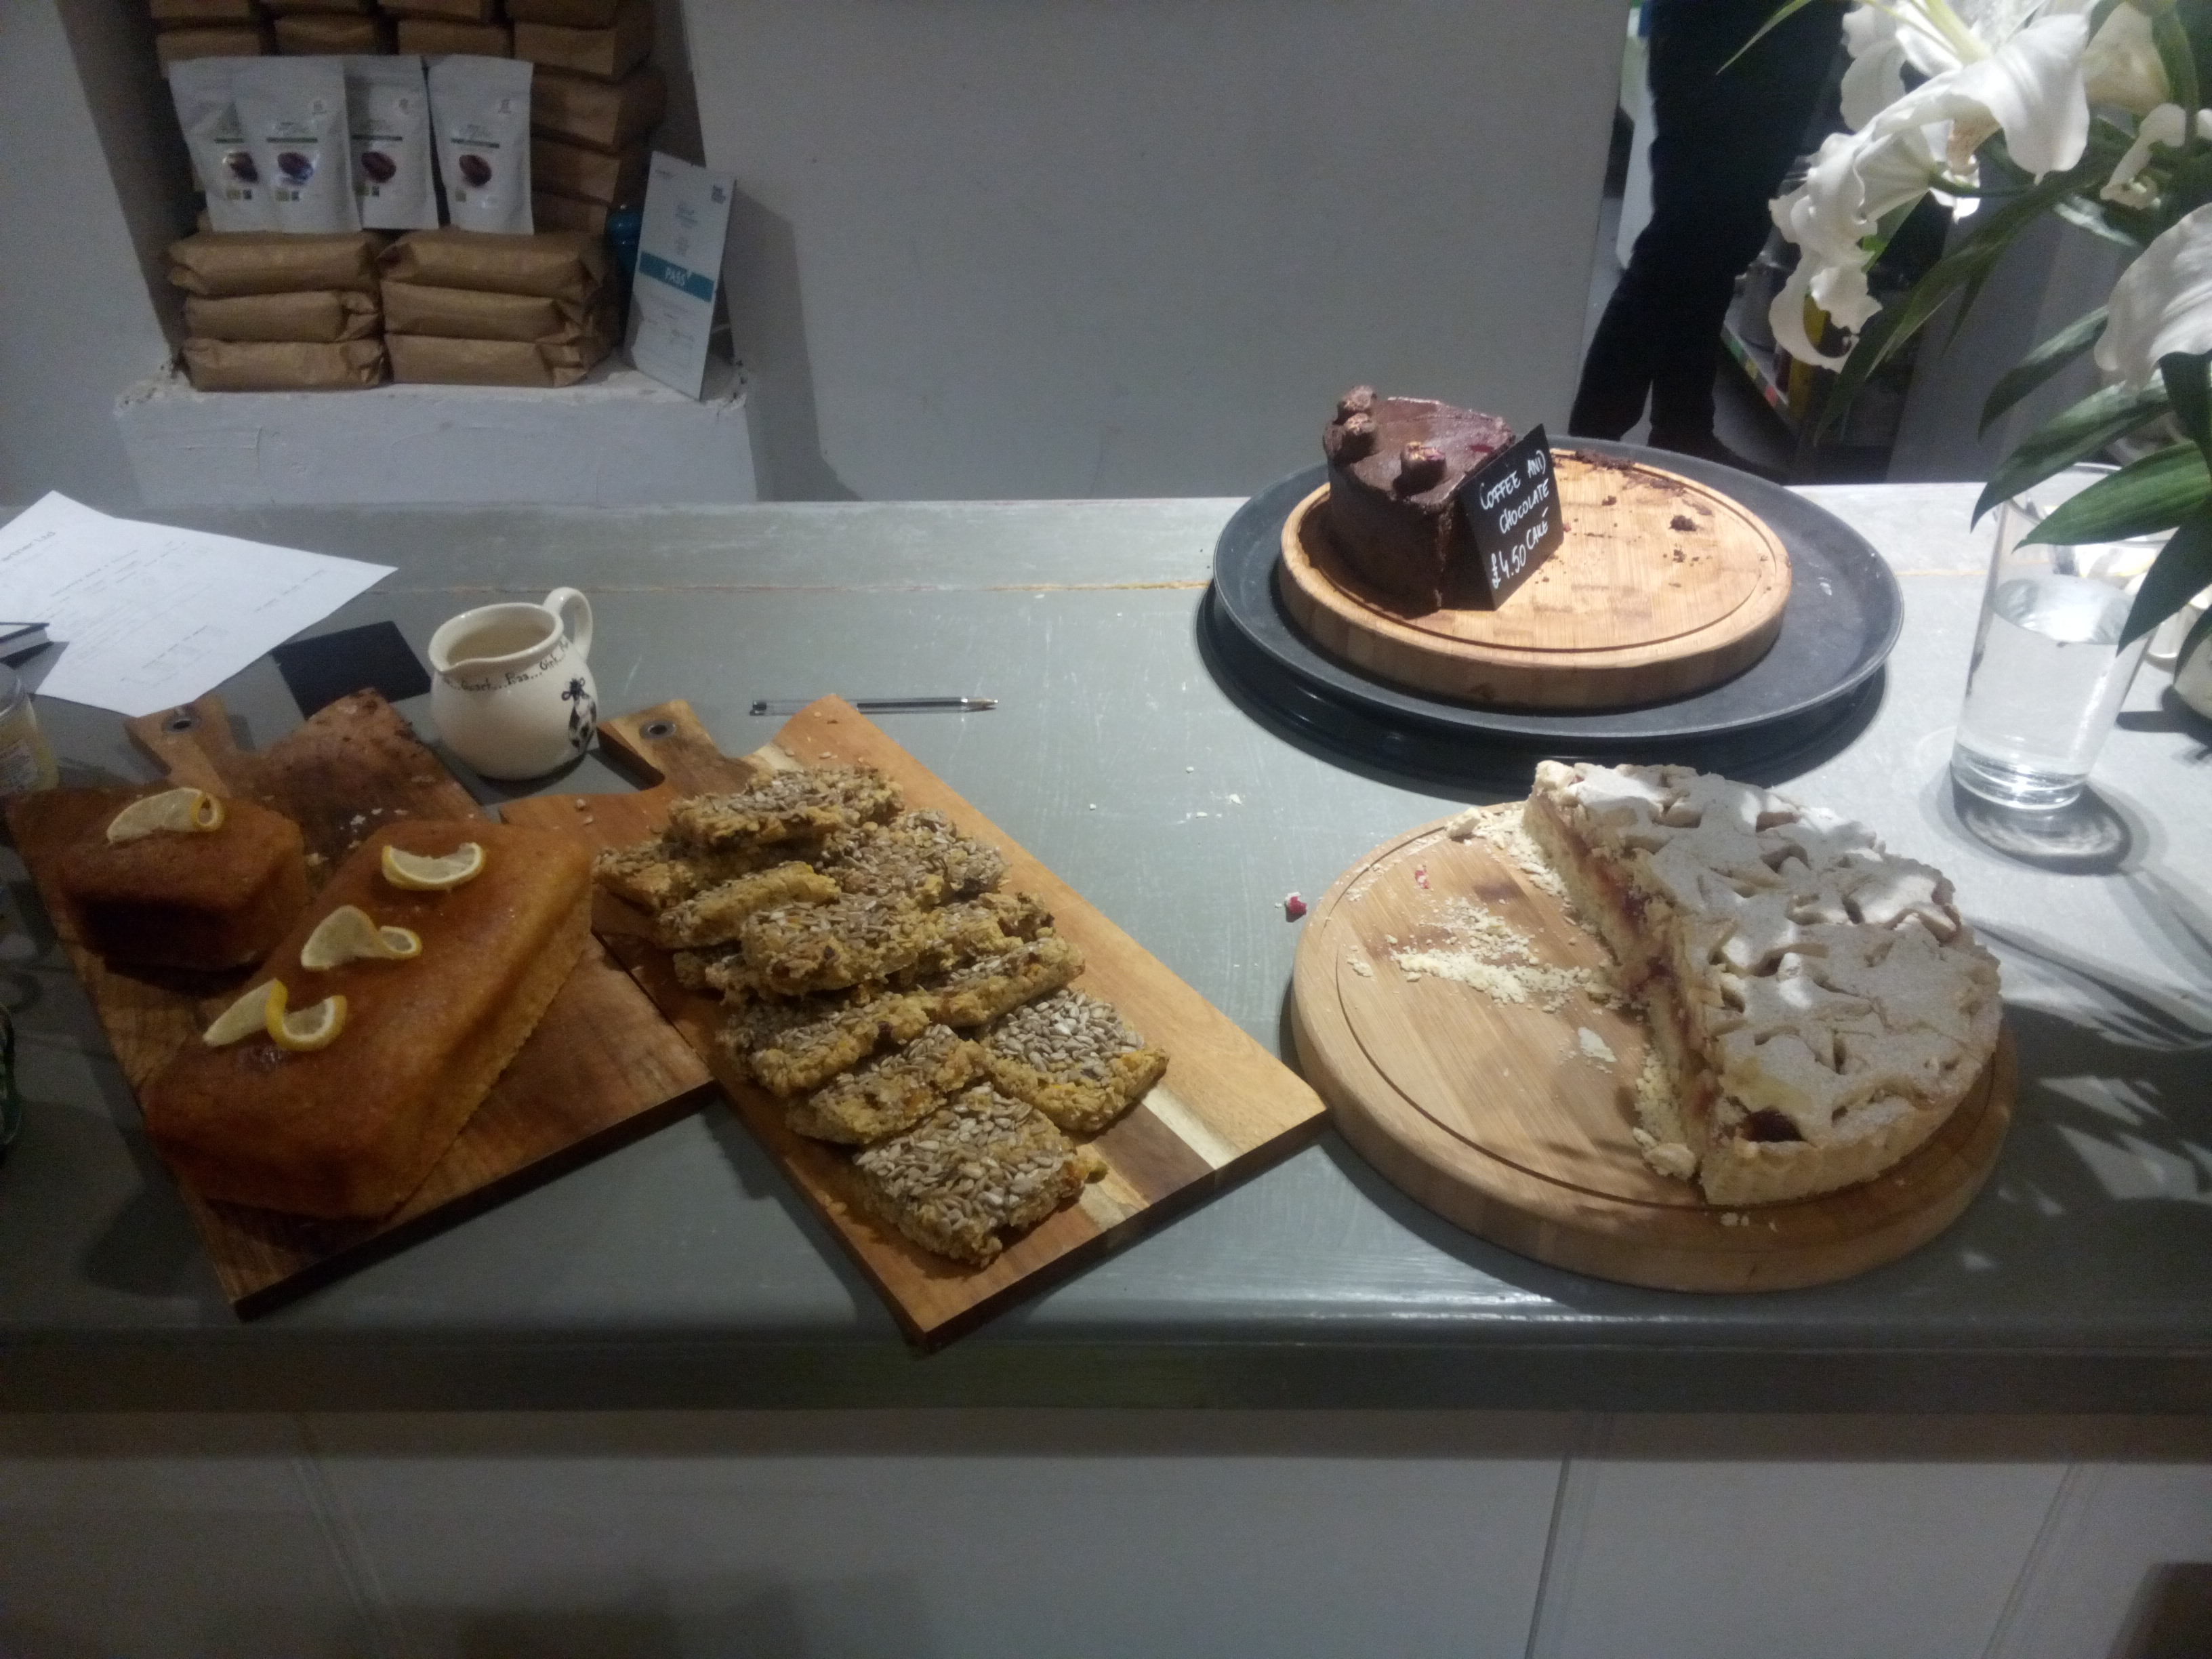 A selection of cakes on the counter